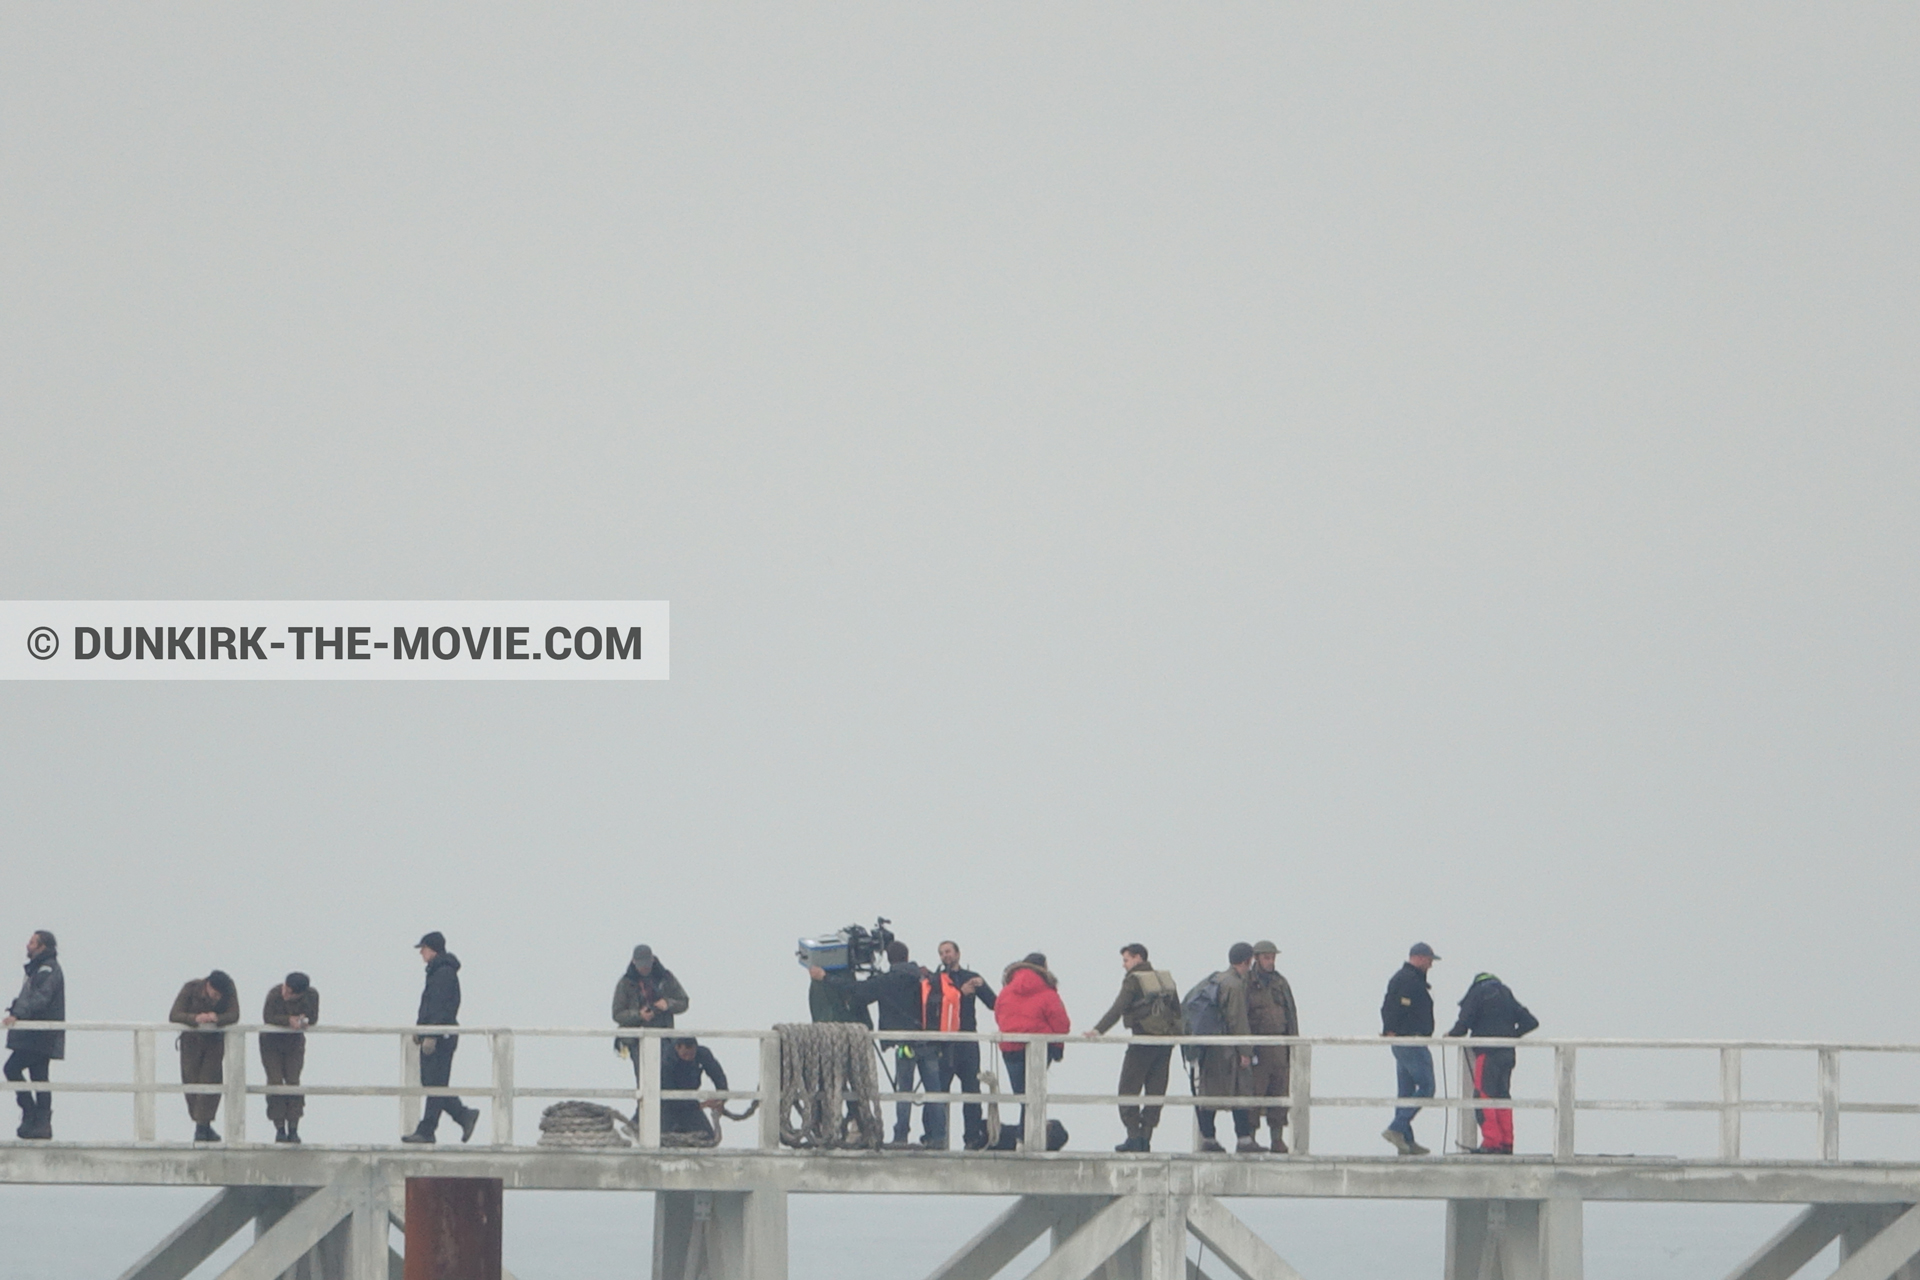 Photo on canvas number 530, of the filming of the film Dunkirk